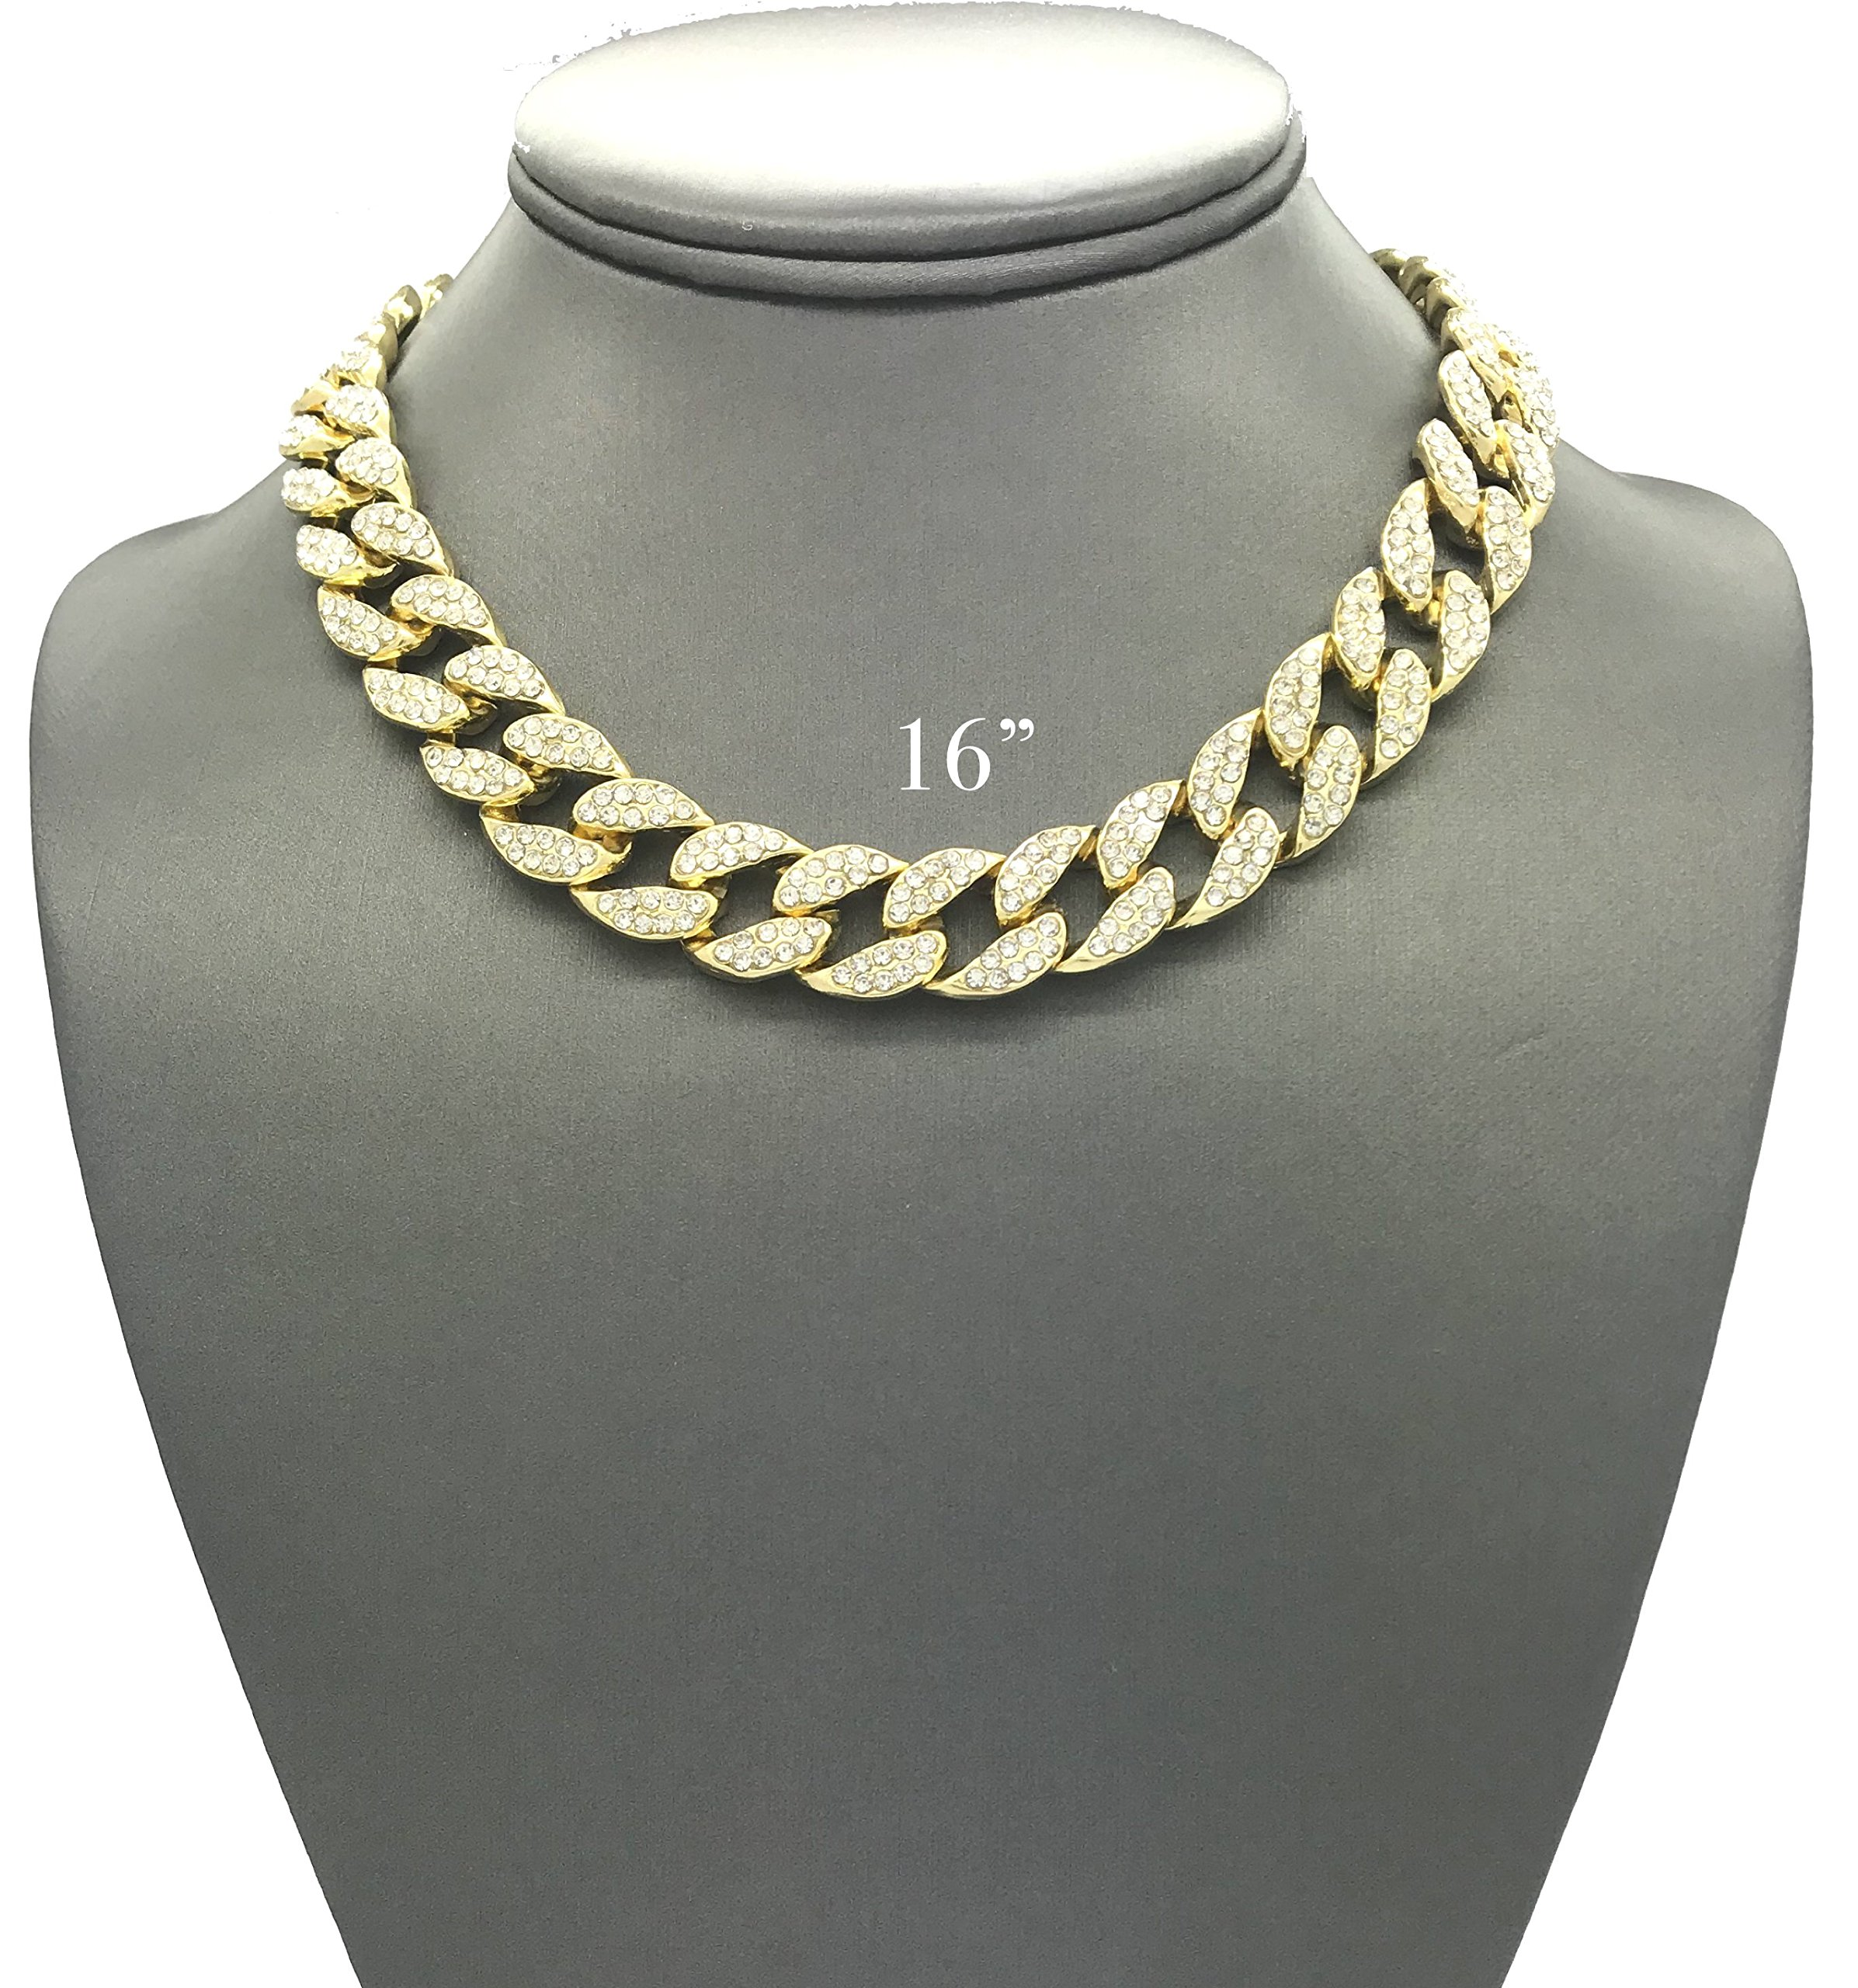 Mens Iced Out Hip Hop Gold tone CZ Miami Cuban Link Chain Choker Necklace (16'')